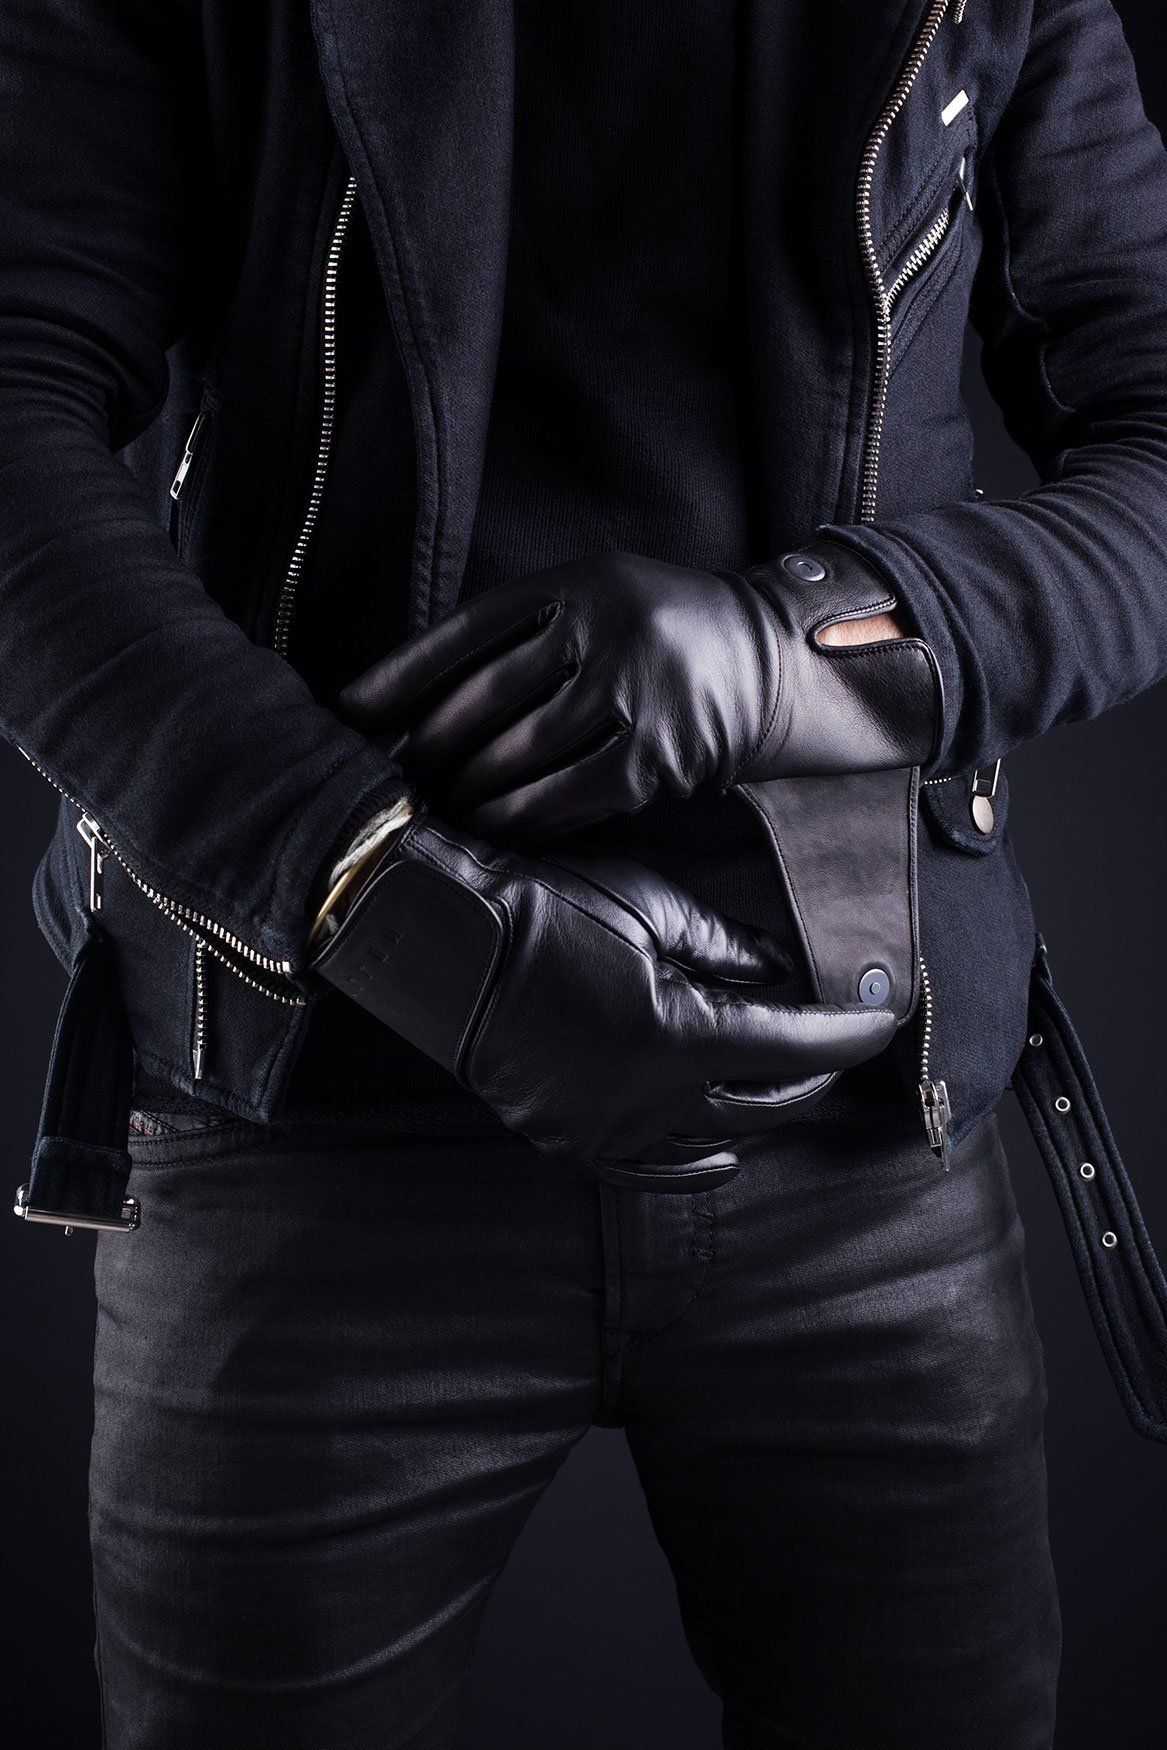 Mens leather gloves at target - Fancy Leather Touchscreen Gloves